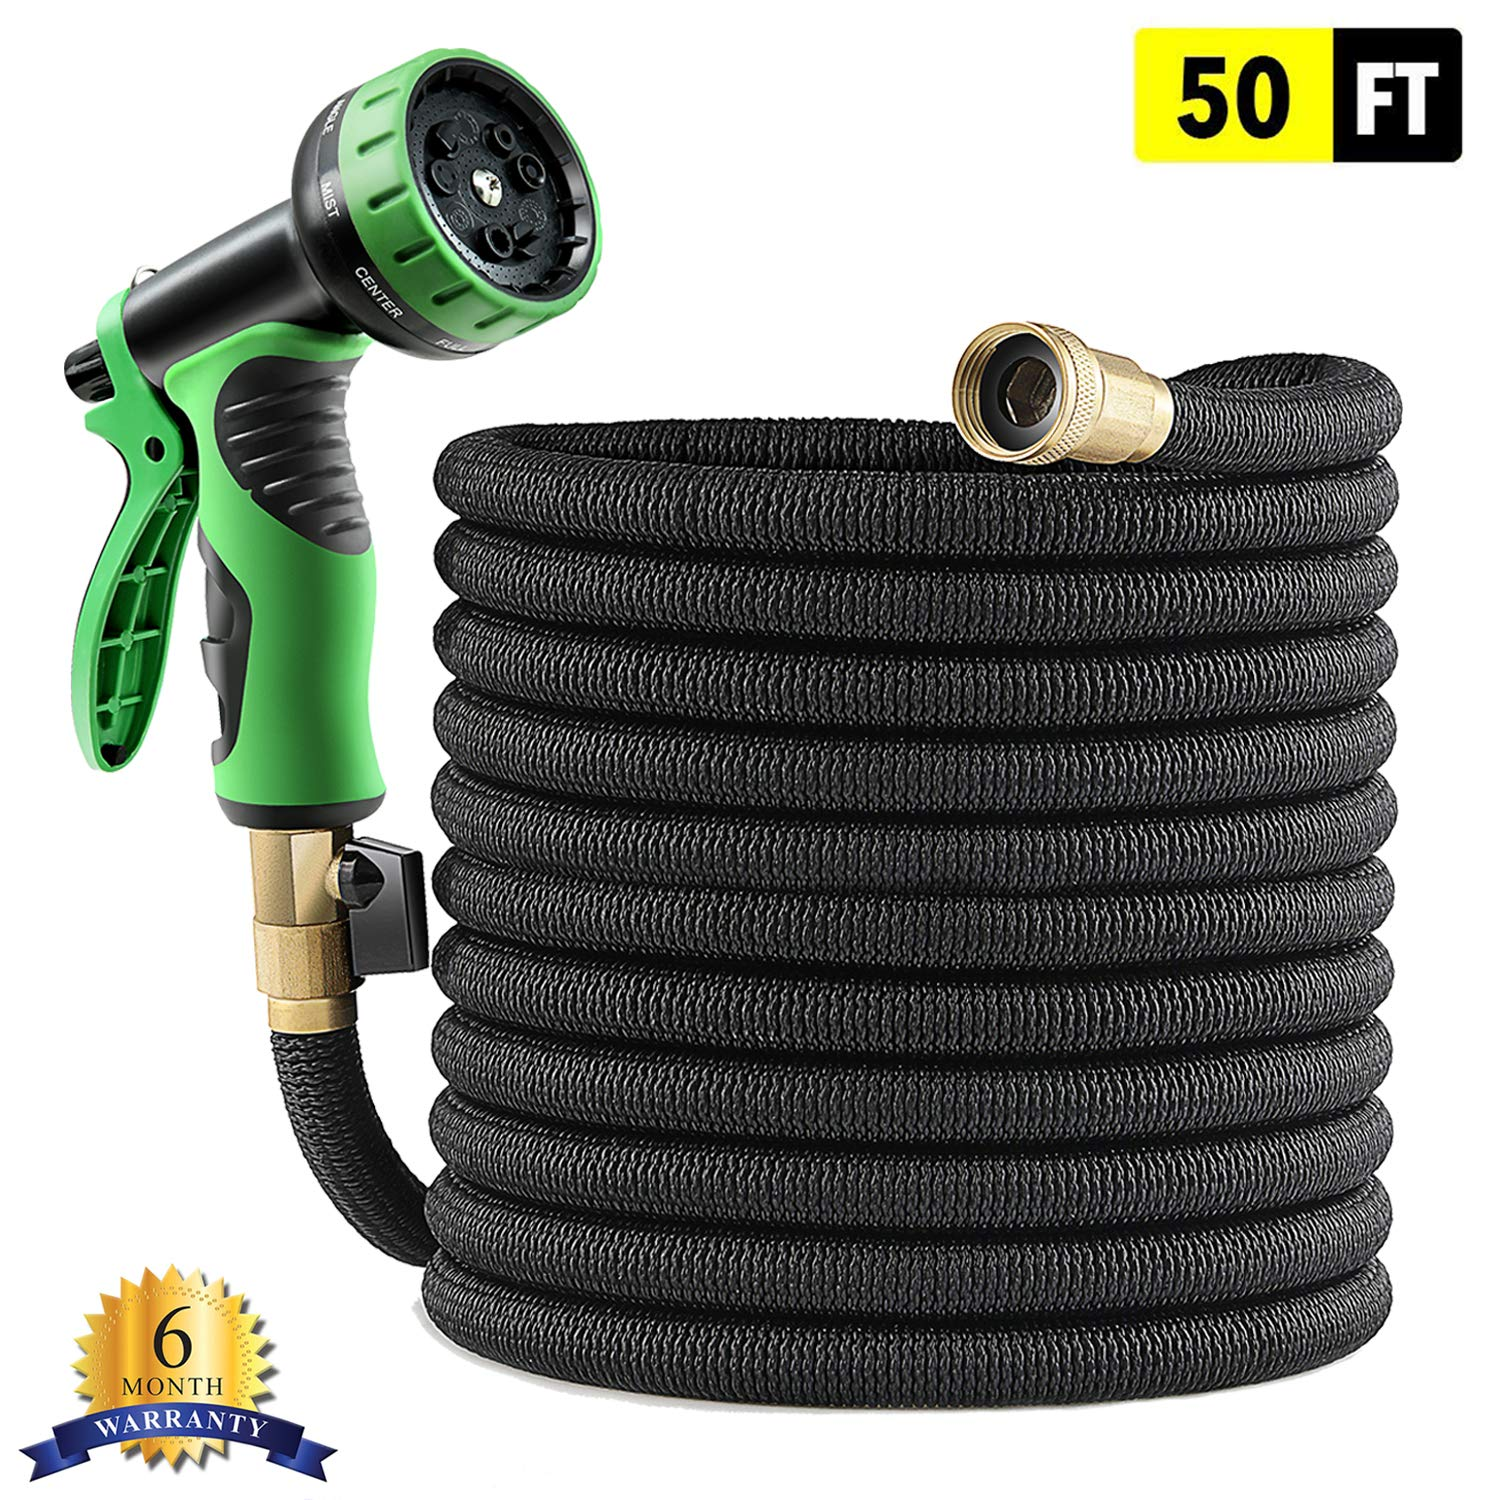 Best Quality Expandable Garden Hose 50 FT with Super Strong Latex Core, Extra Long Life Textile, No Rust Brass Connector, No Kink, No Twist, No Tangle and Newest 9 Function Spray Nozzle